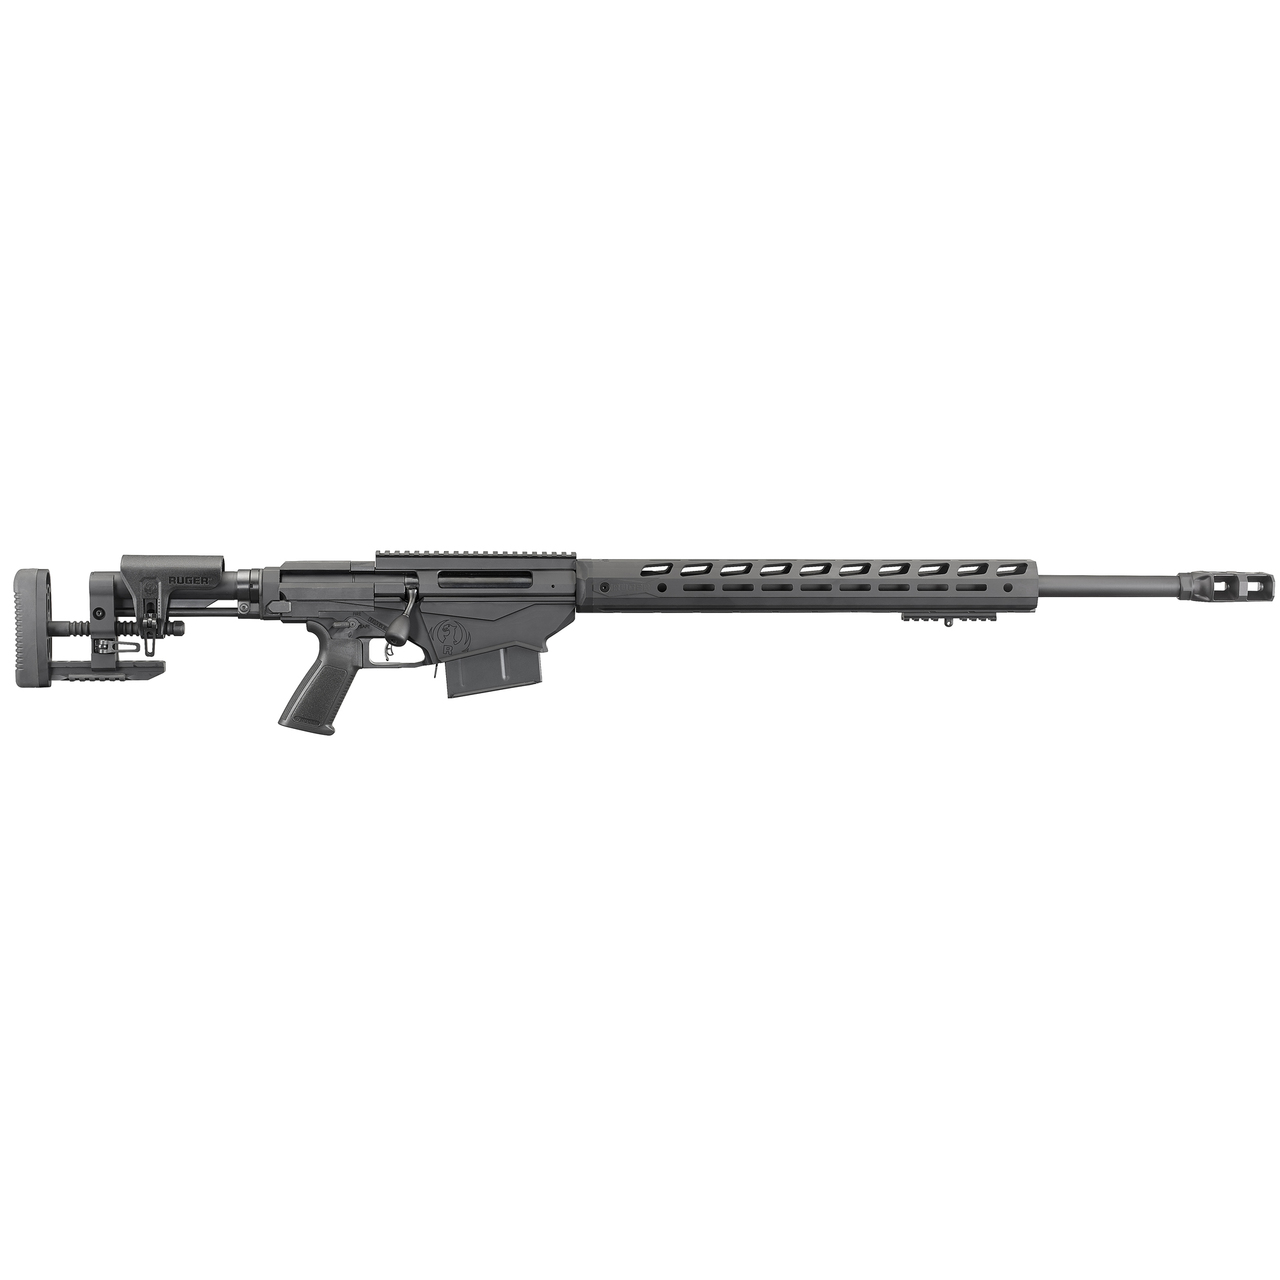 Ruger Precision Rifle, 300 Win Mag